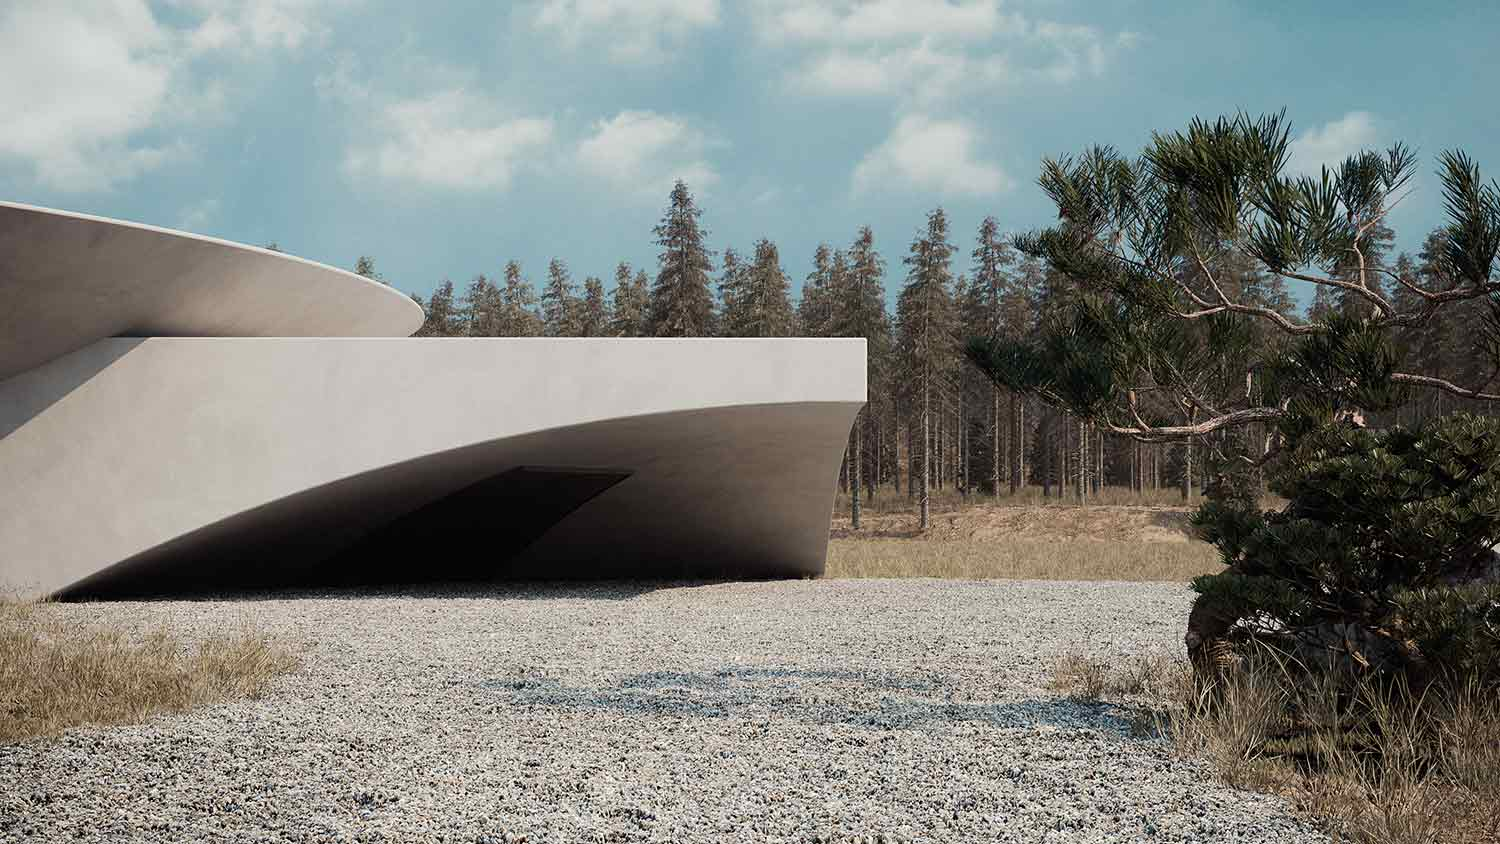 Bunker home Plan B is designed to outlast the apocalypse – in style